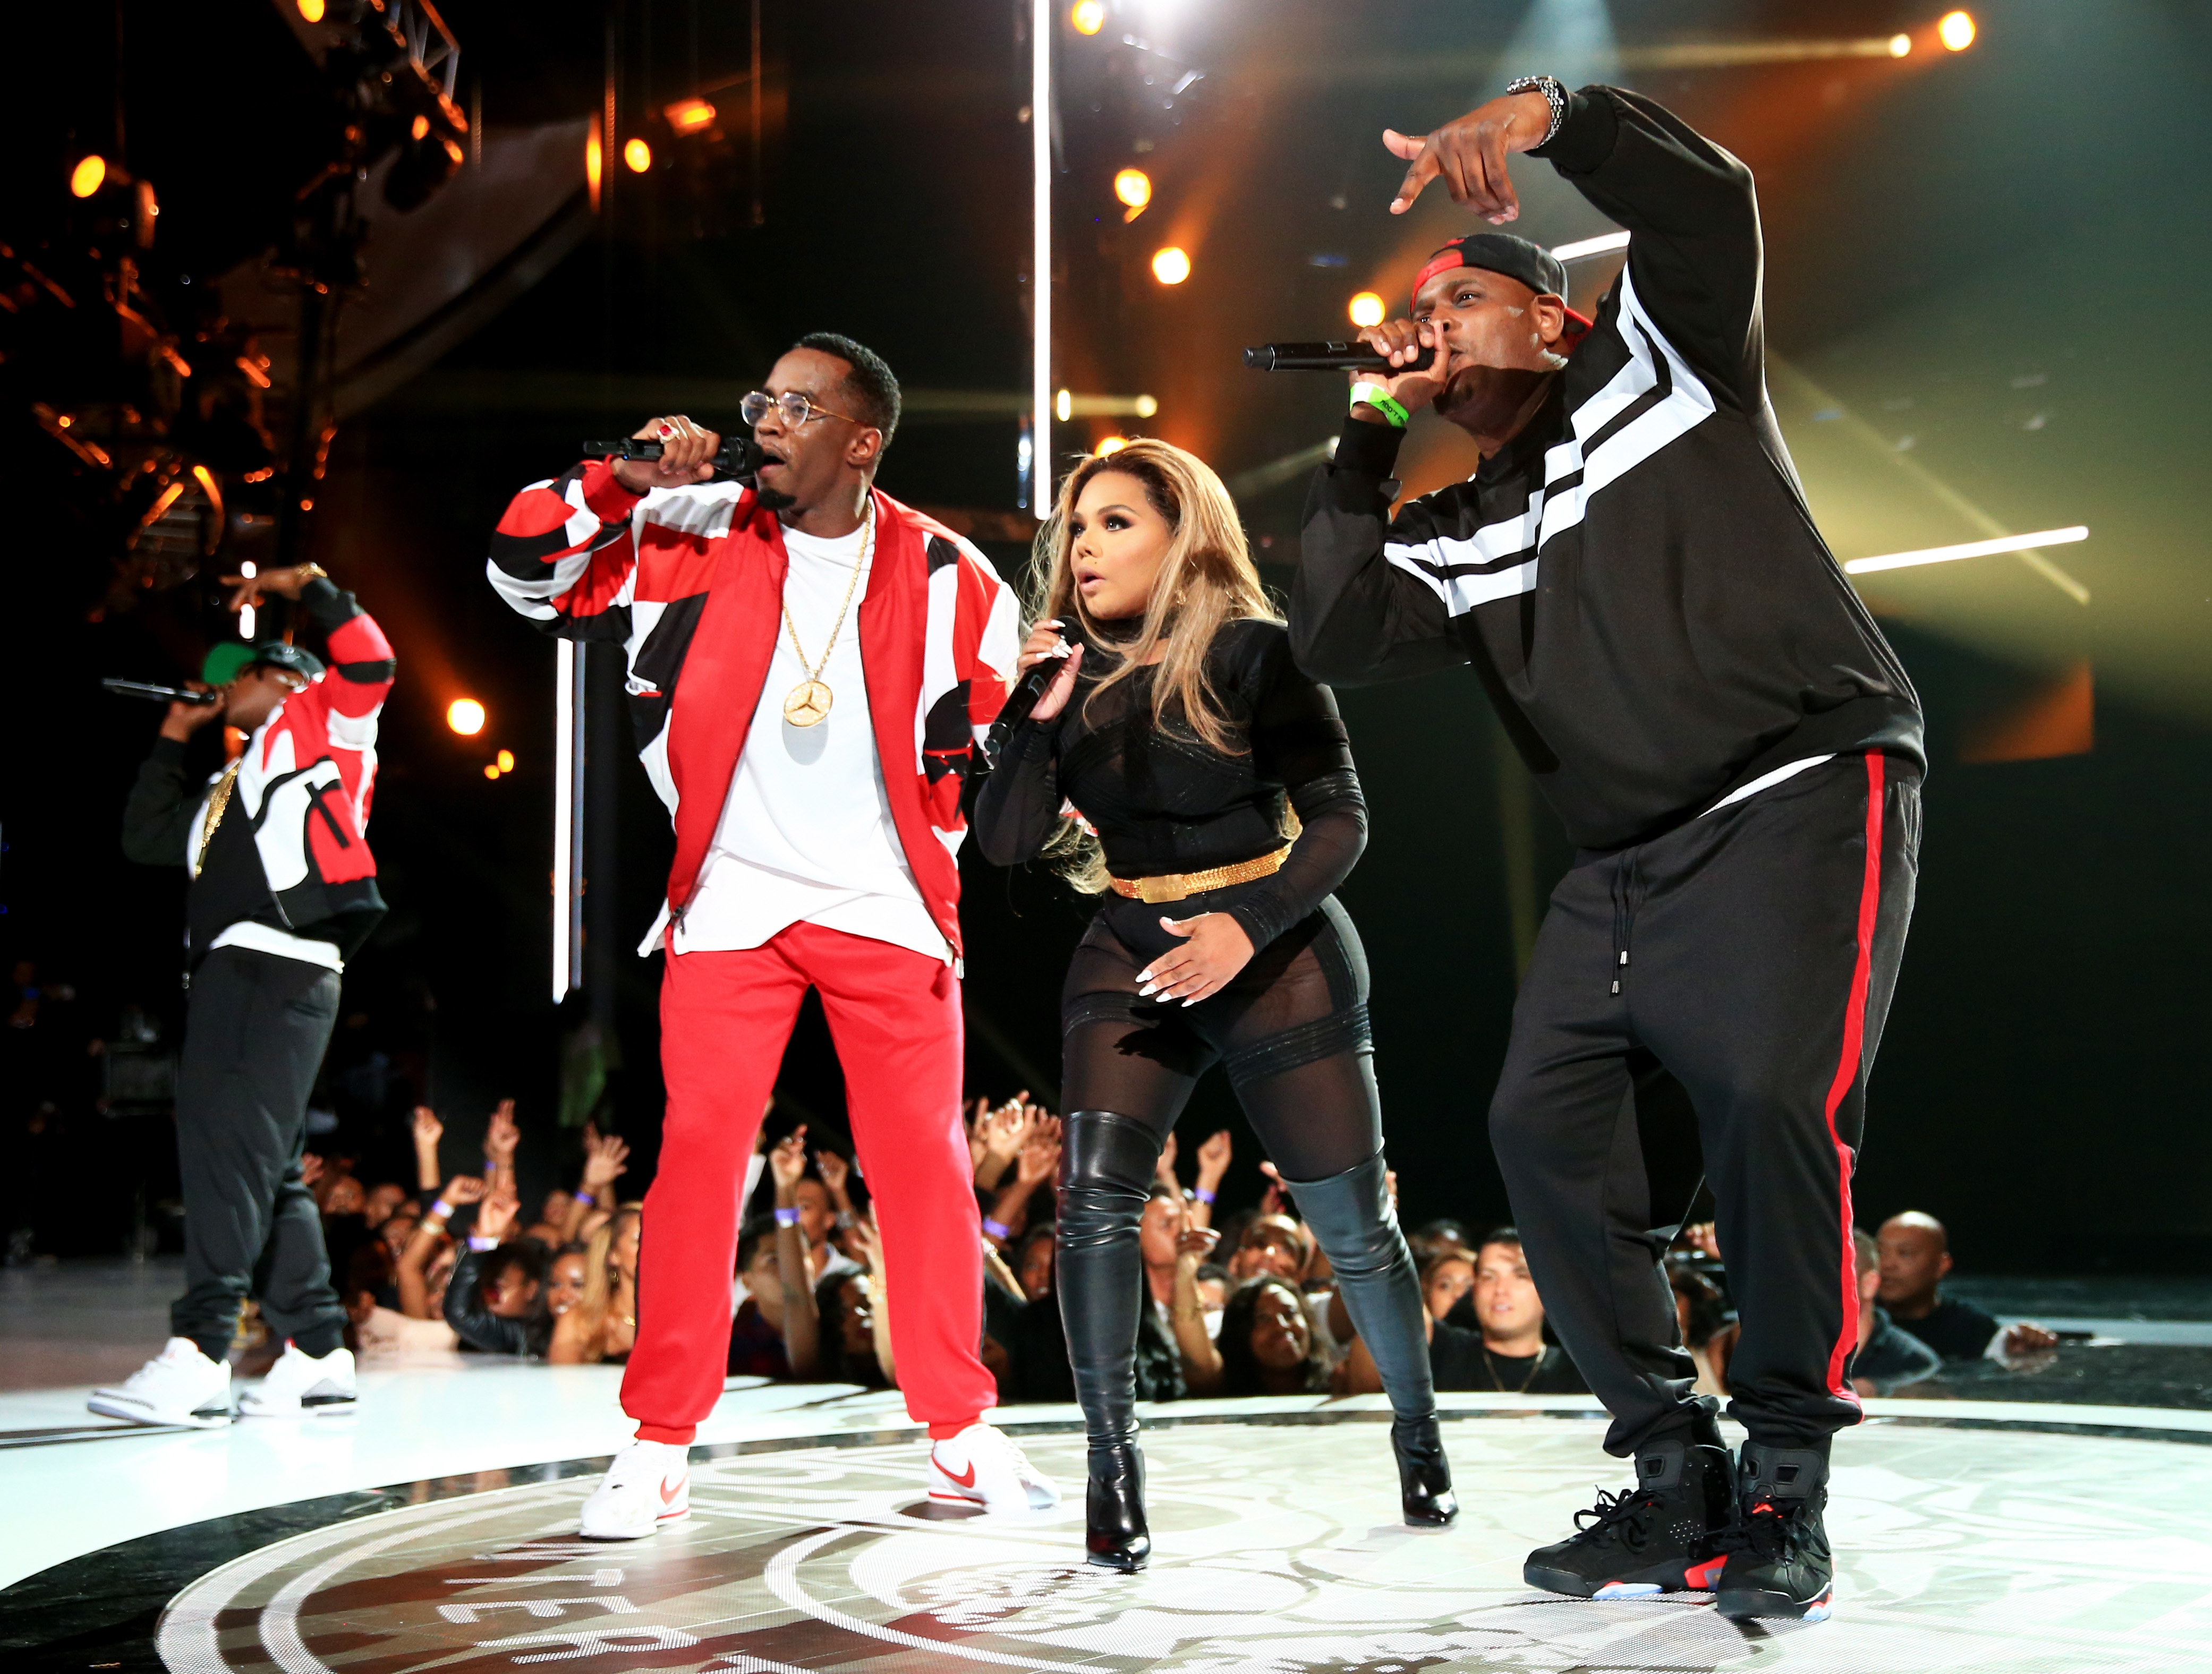 Sean 'Diddy' Combs, Lil' Kim and Sheek Louch of The Lox perform onstage during the 2015 BET Awards at the Microsoft Theater in Los Angeles on June 28, 2015.